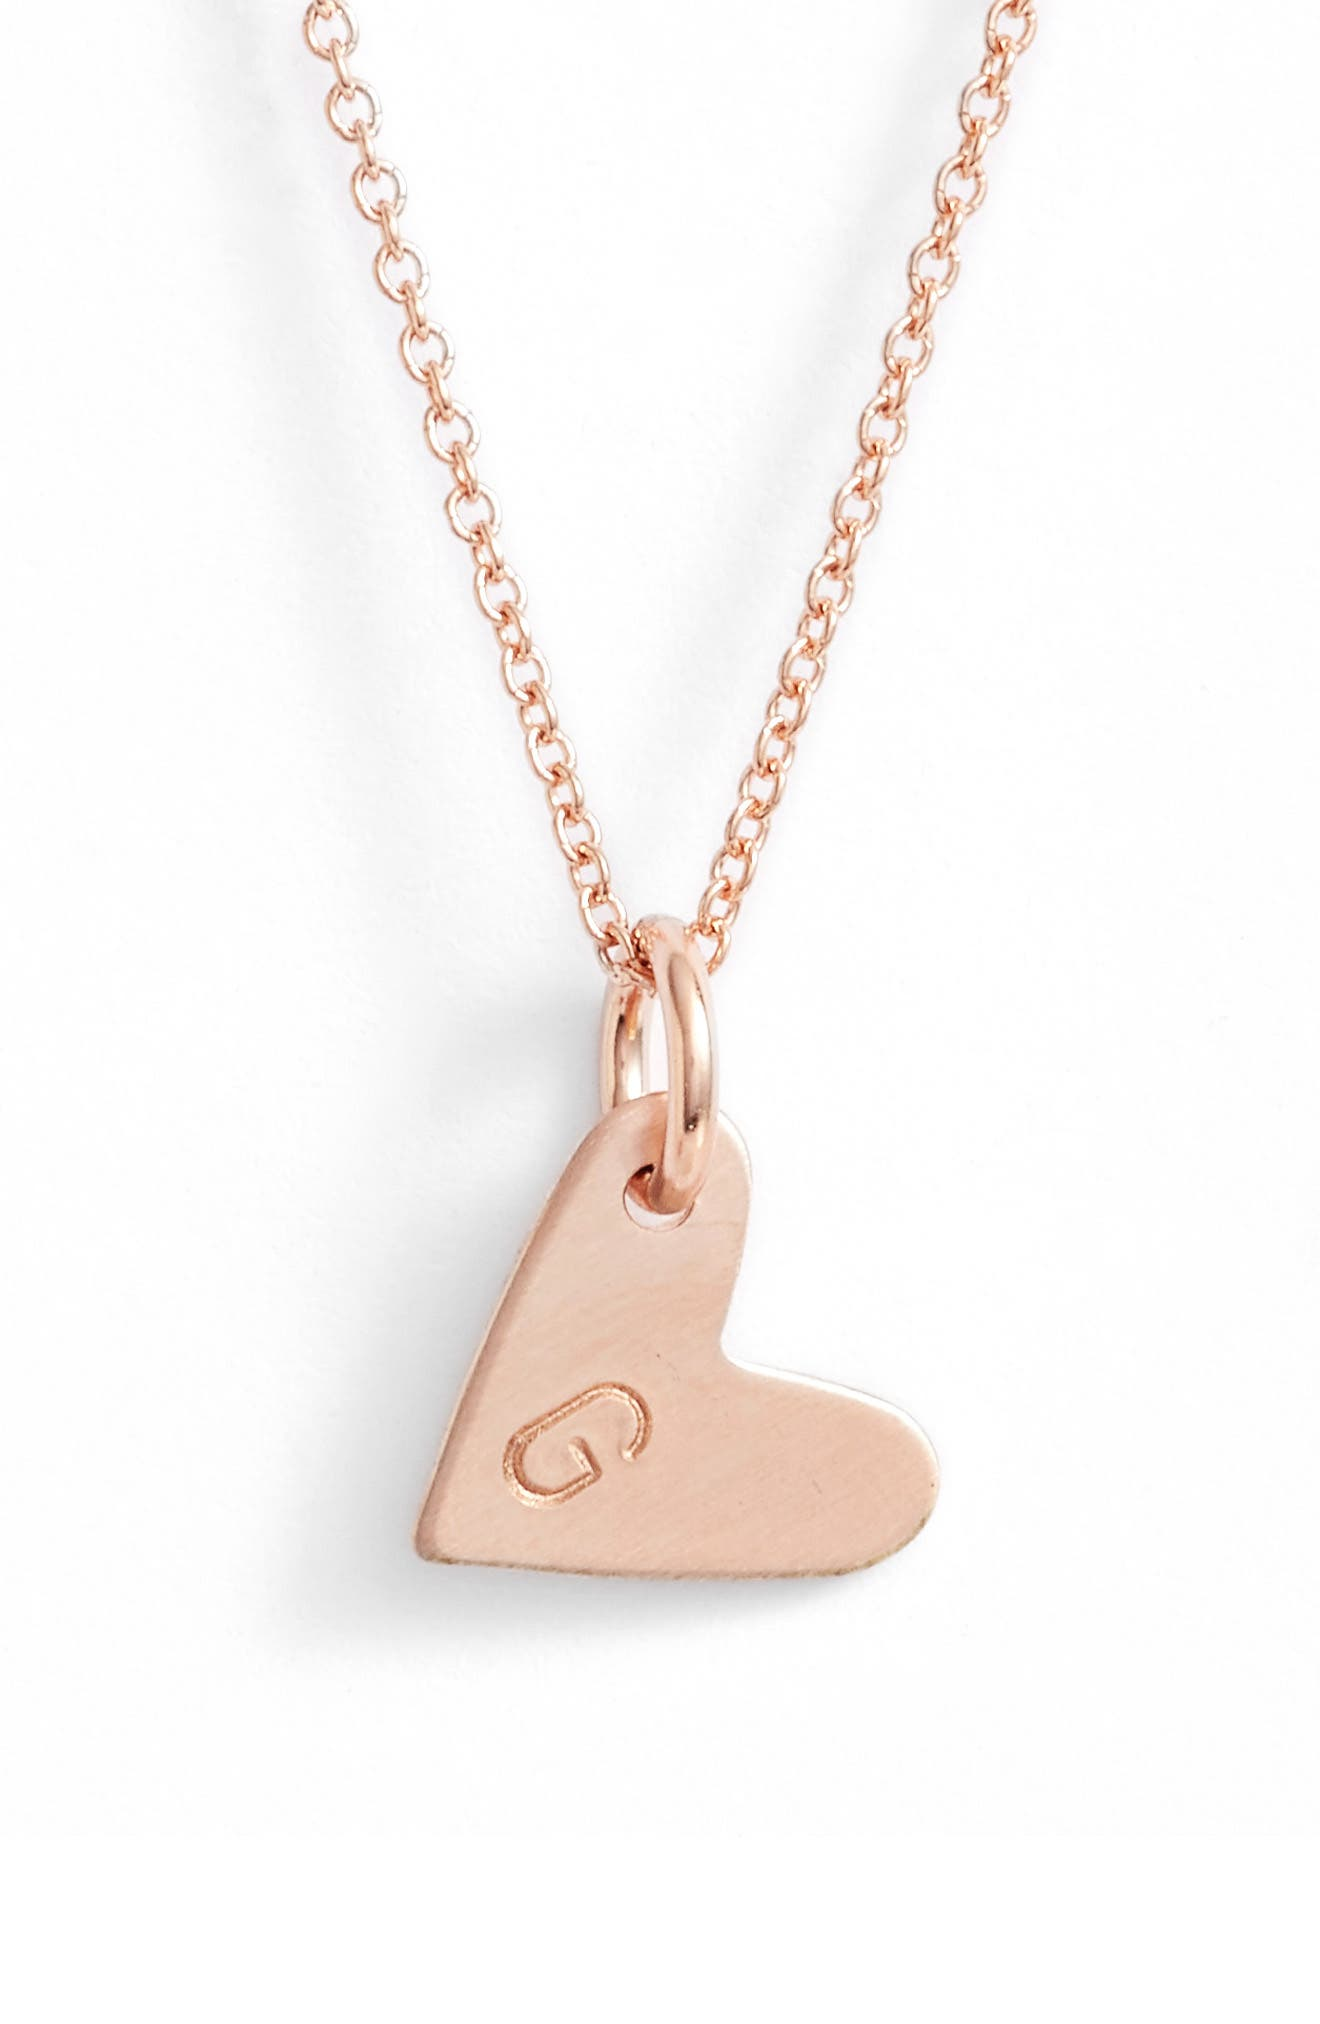 Main Image - Nashelle Initial Heart Pendant Necklace